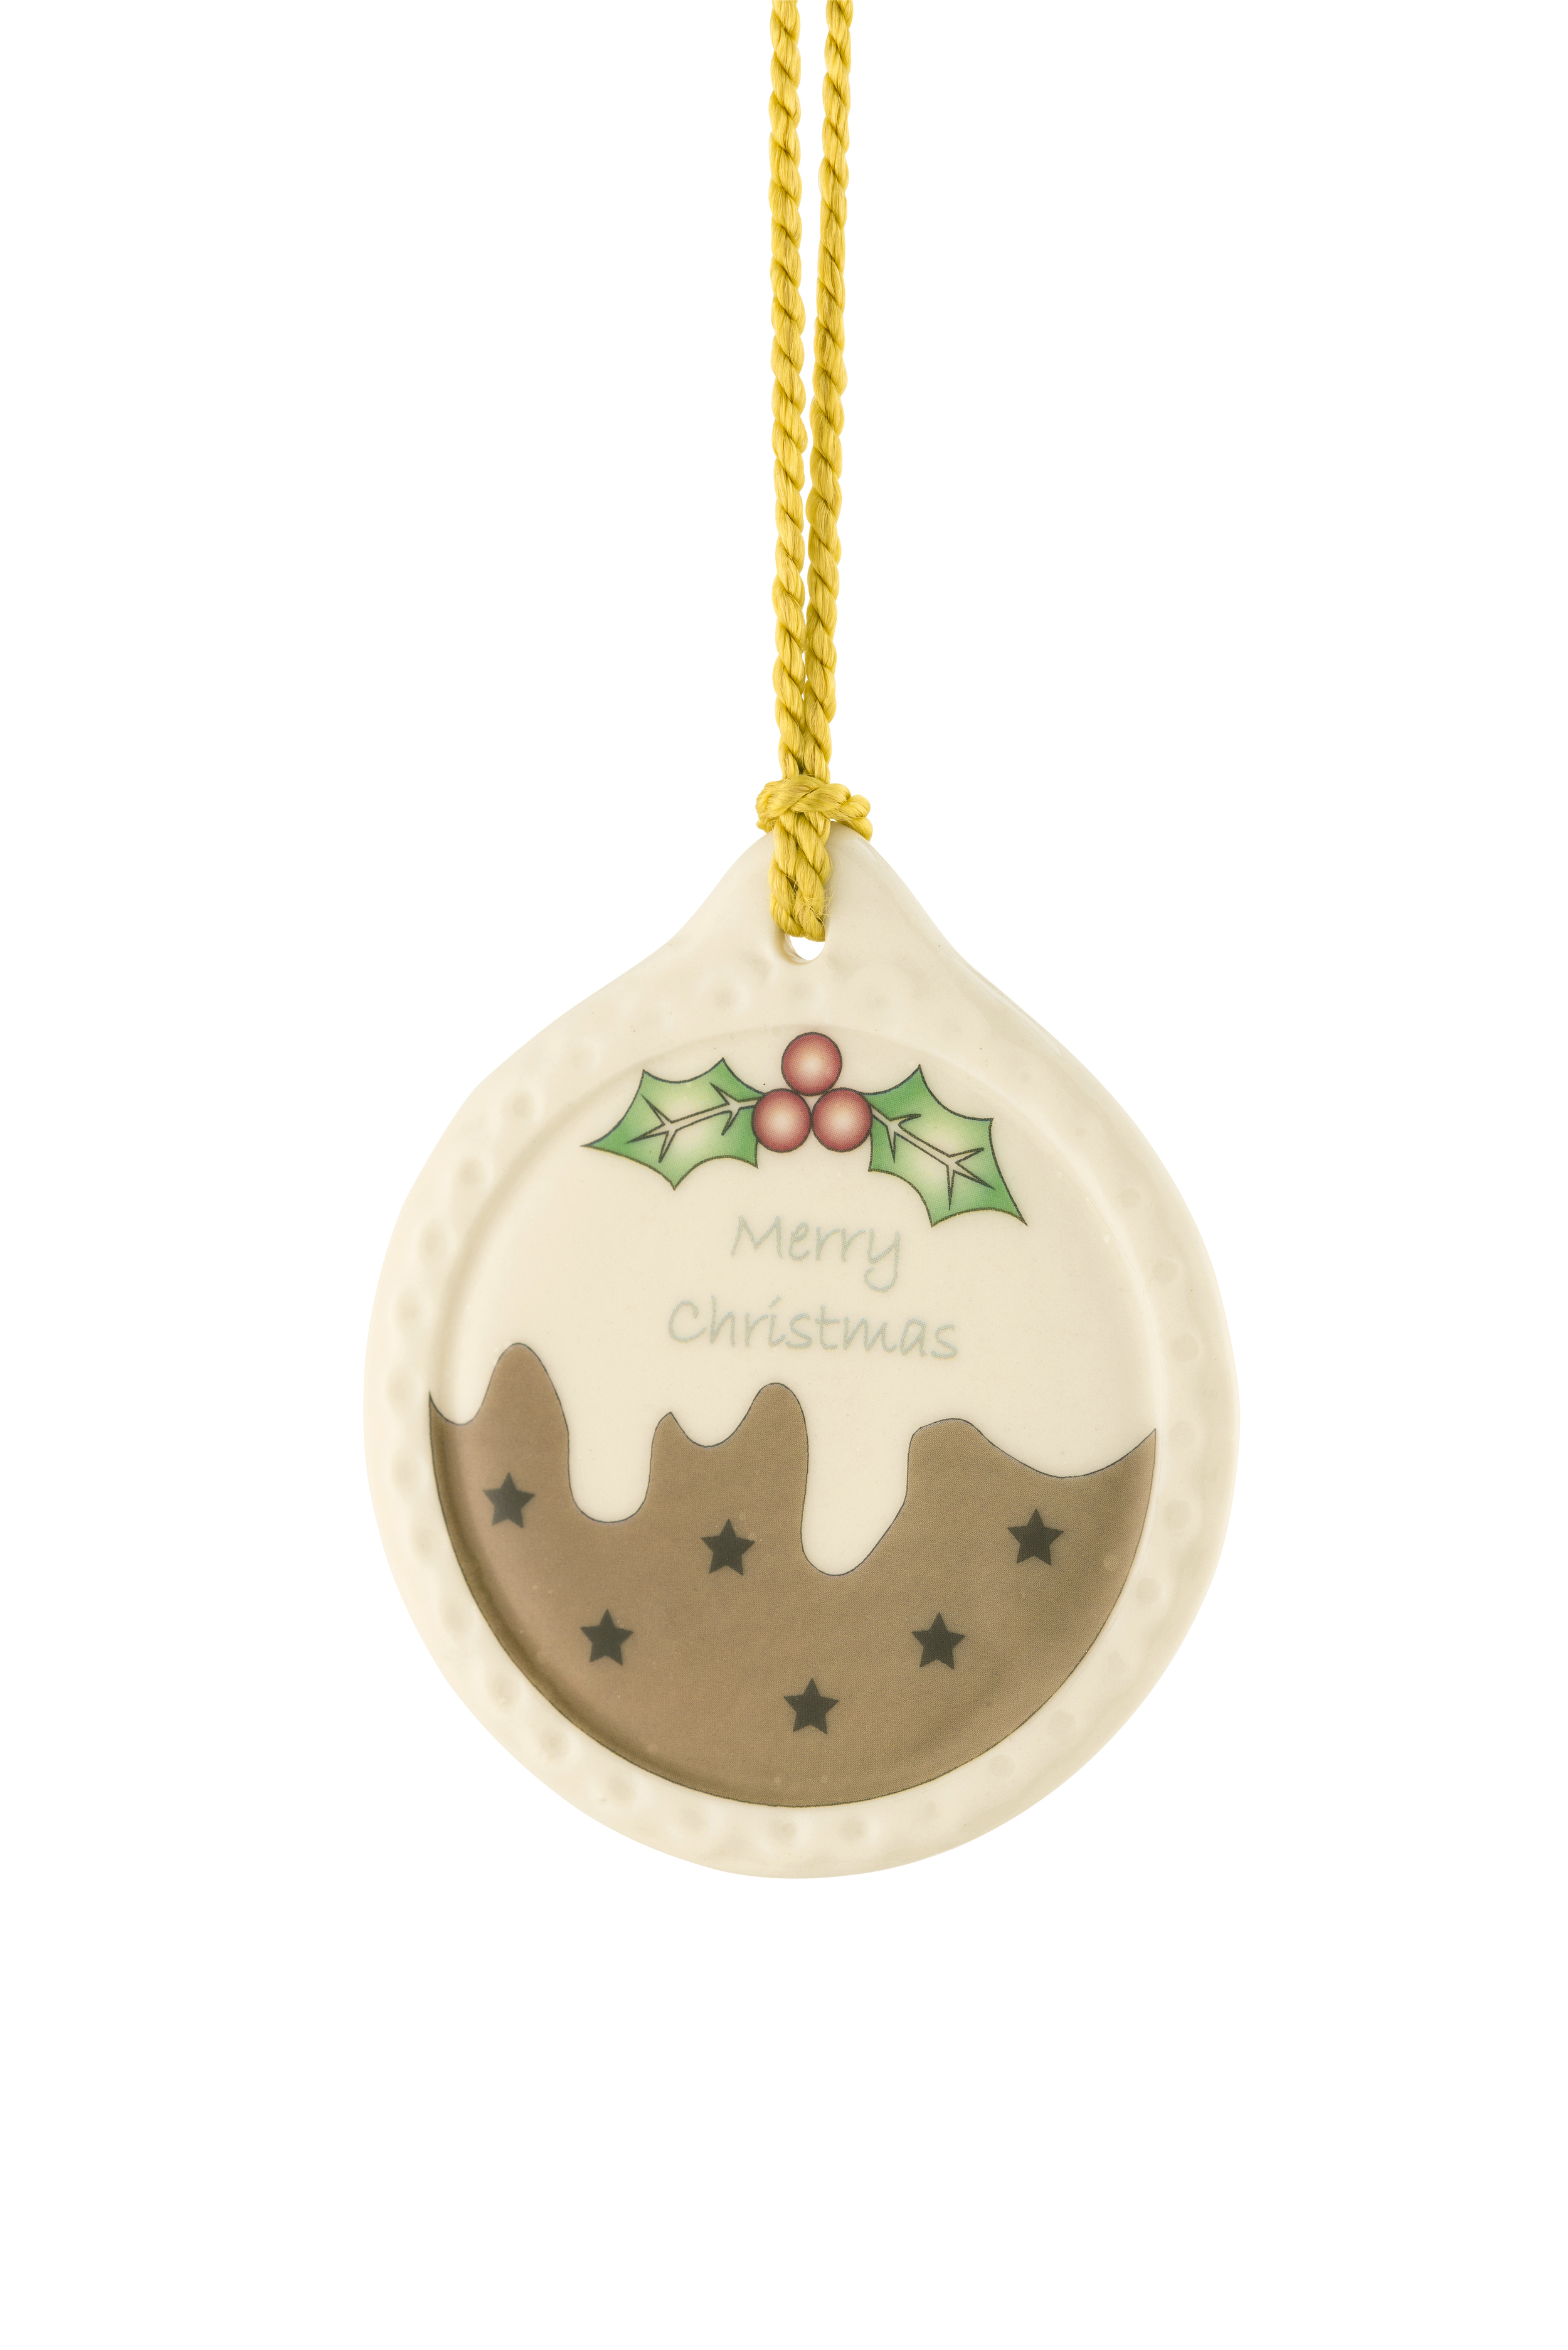 Quick View for Irish Christmas - Belleek Plum Pudding Ornament